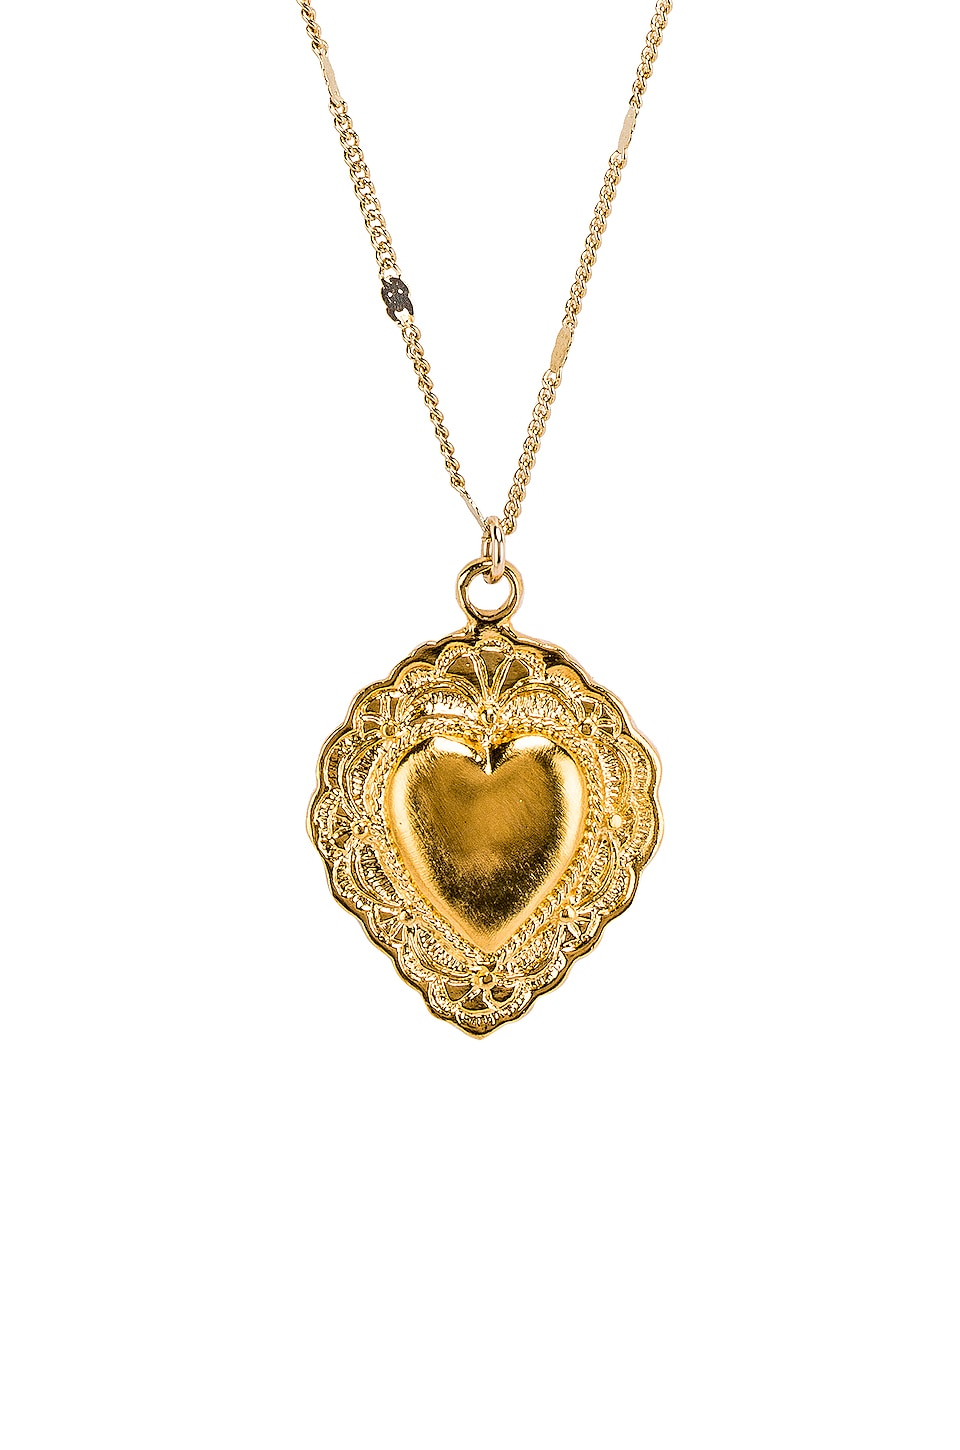 Natalie B Jewelry Sacred Heart Necklace in Gold